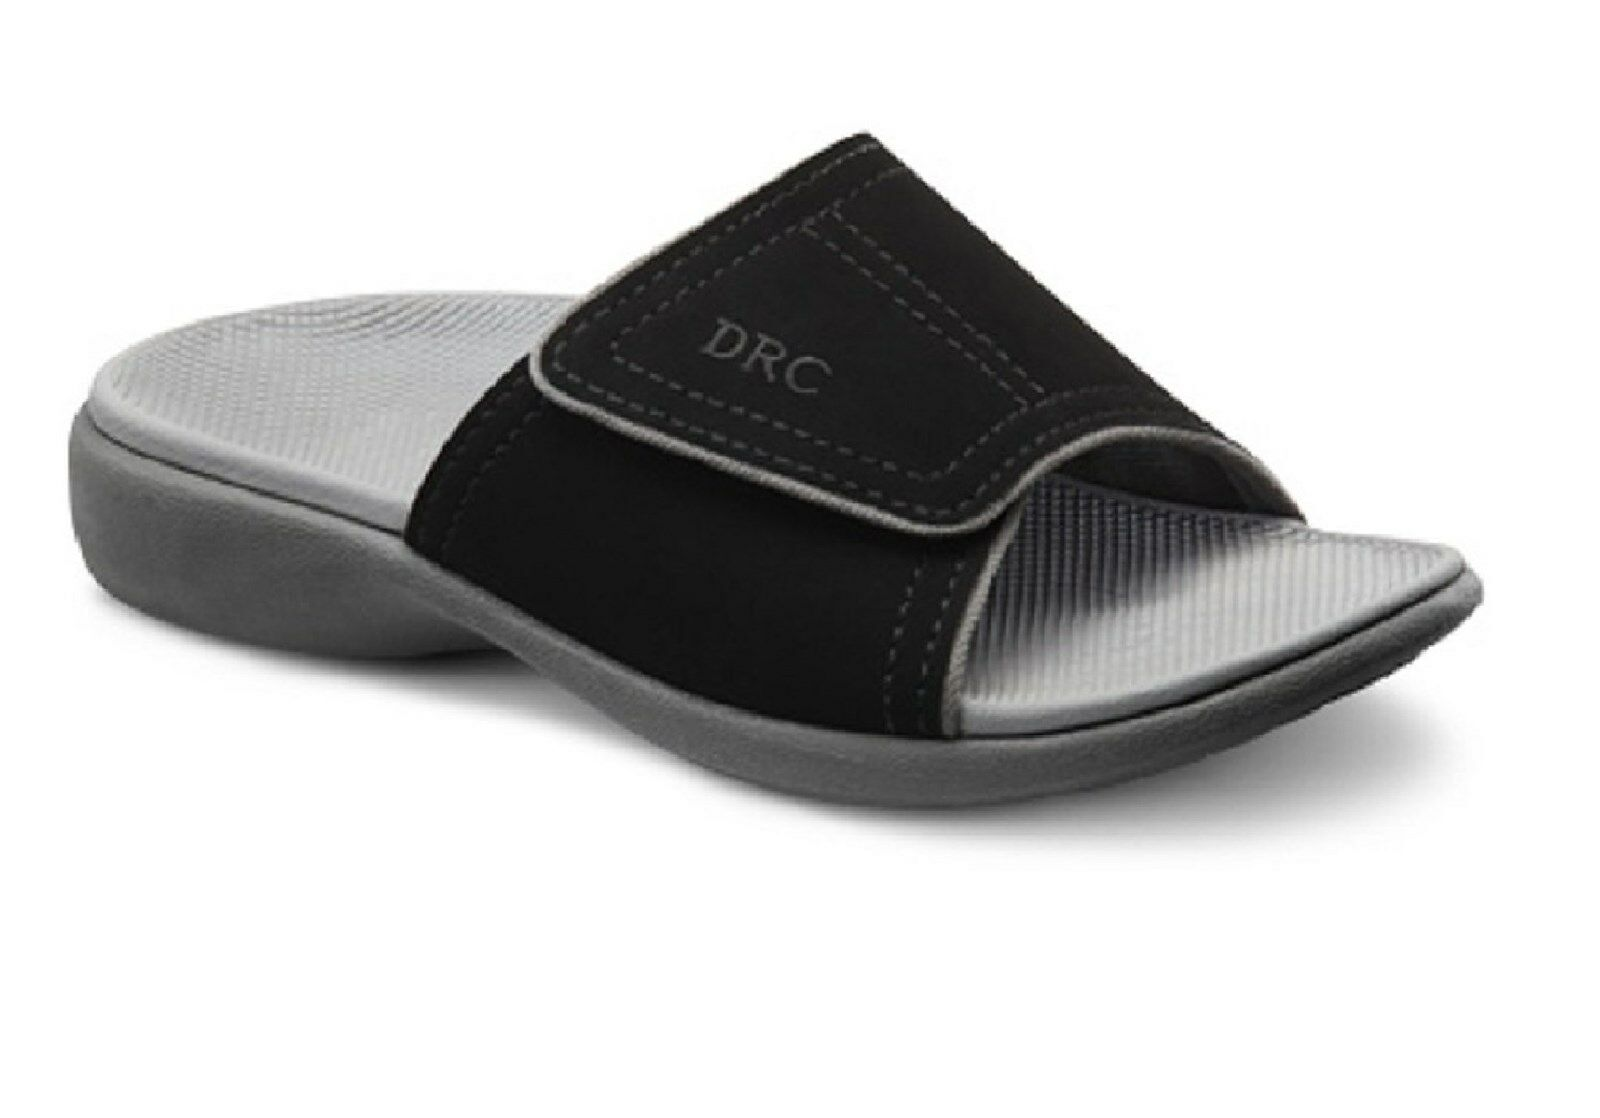 Dr Comfort Comfort Comfort Men Connor- Arch Support Sandal bf3427